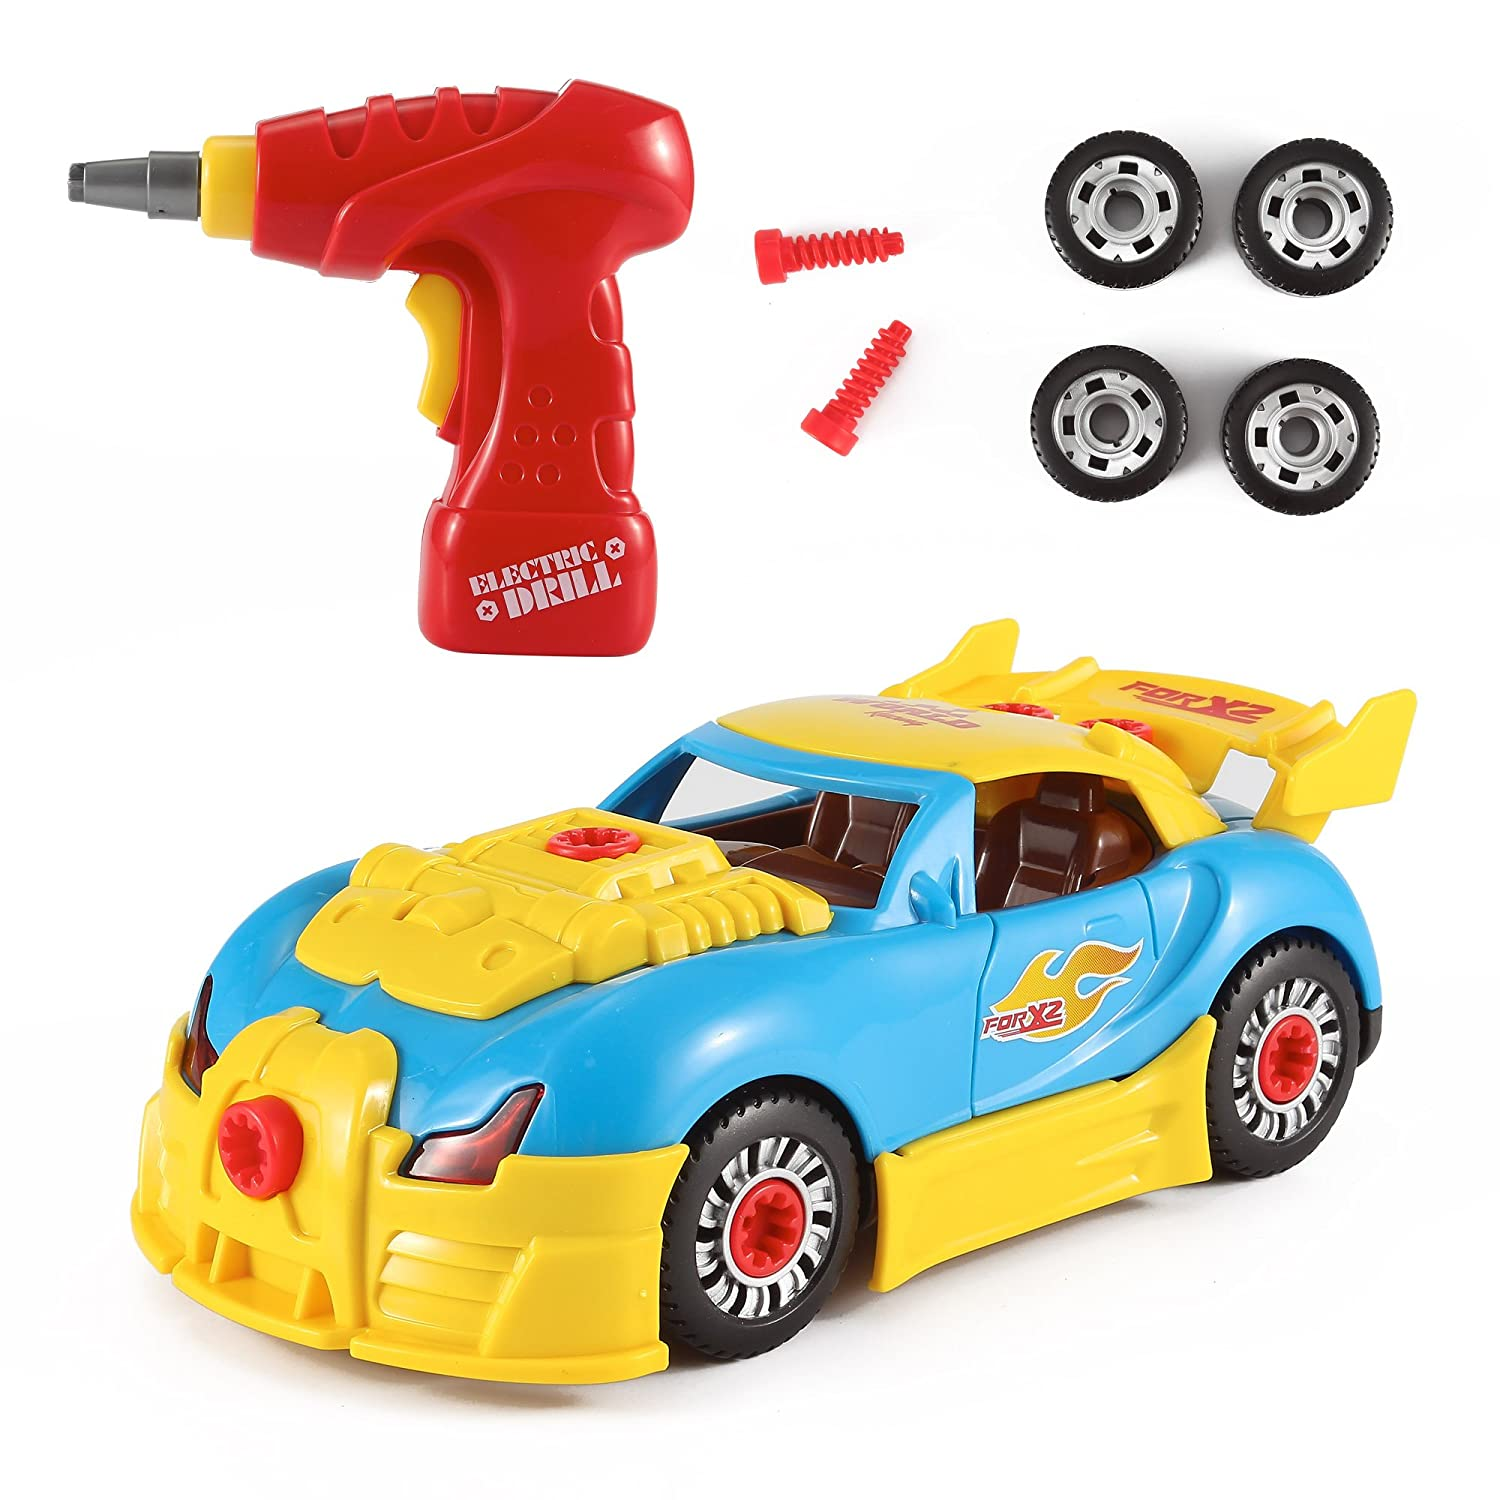 amazoncom liberty imports world racing car take a part toy for kids with 30 take apart pieces tool drill lights and sounds toys games